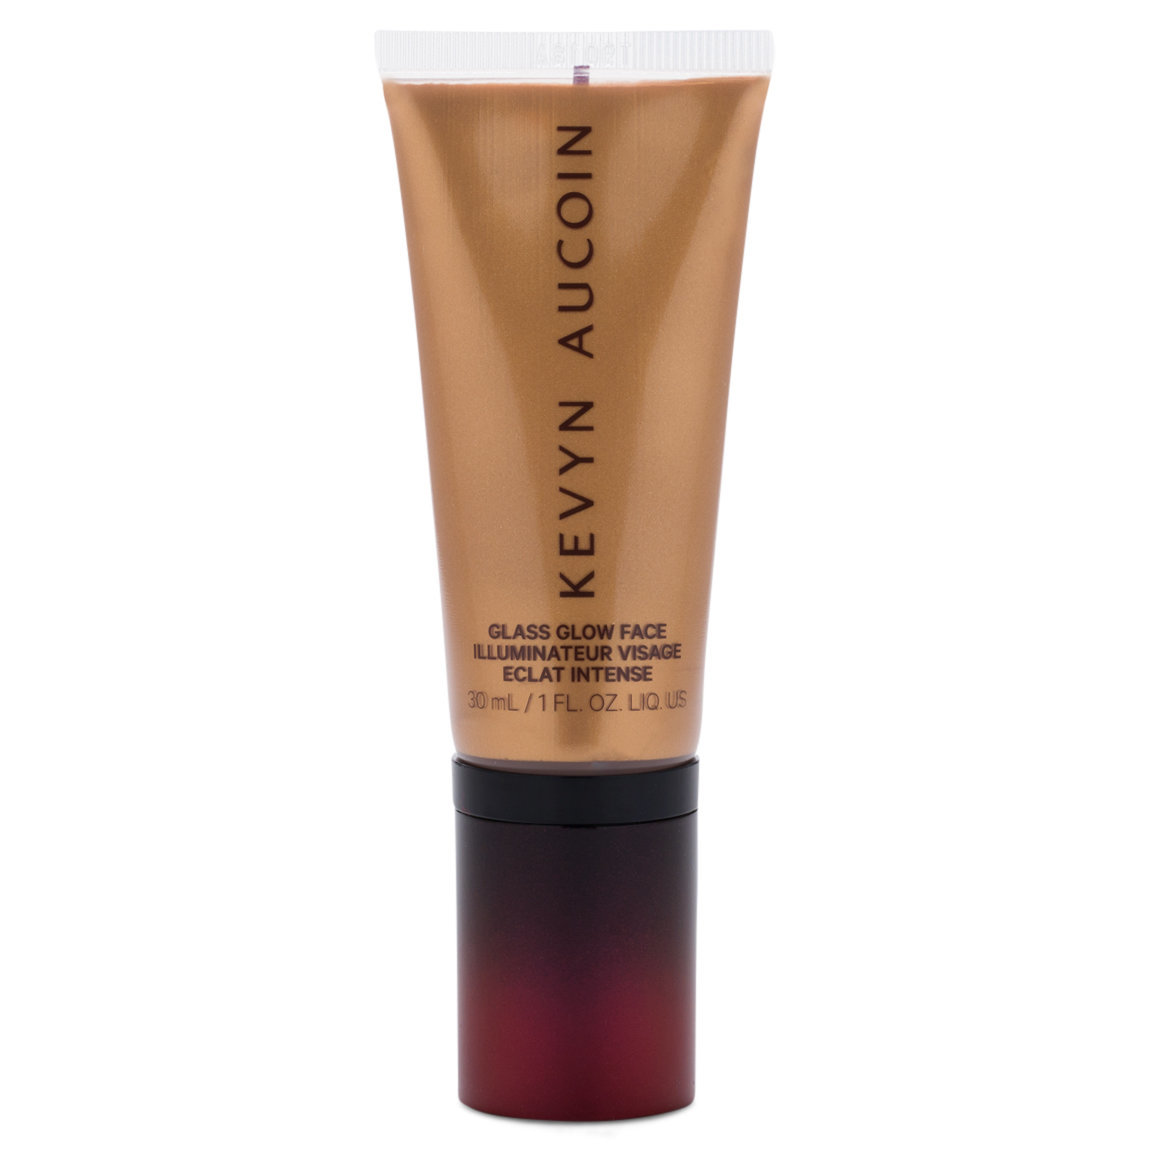 Kevyn Aucoin Glass Glow Face Spectrum Bronze product swatch.